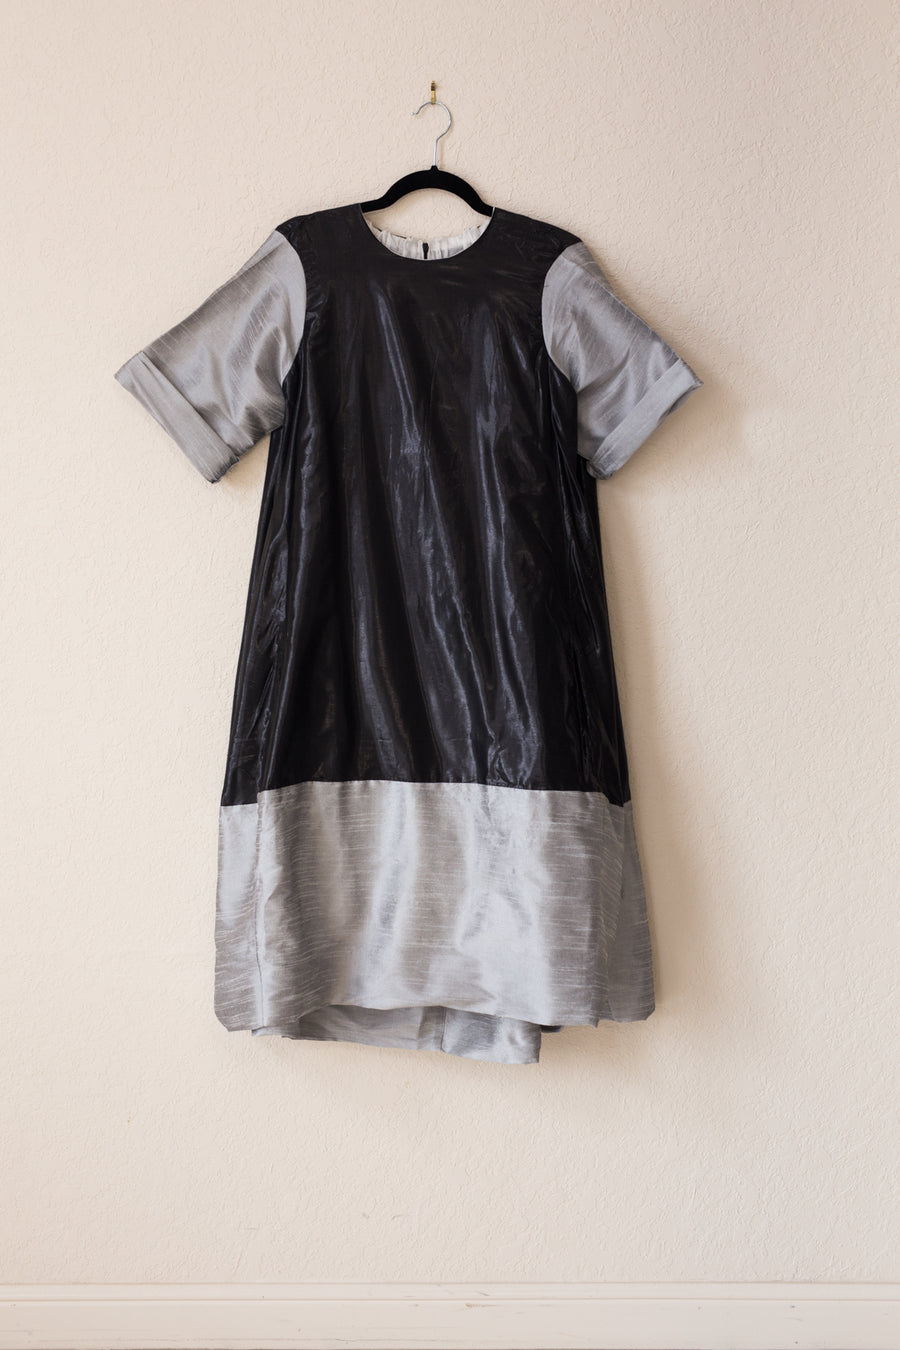 Nikki Dress - Black Shine/Silver Tussel Silk